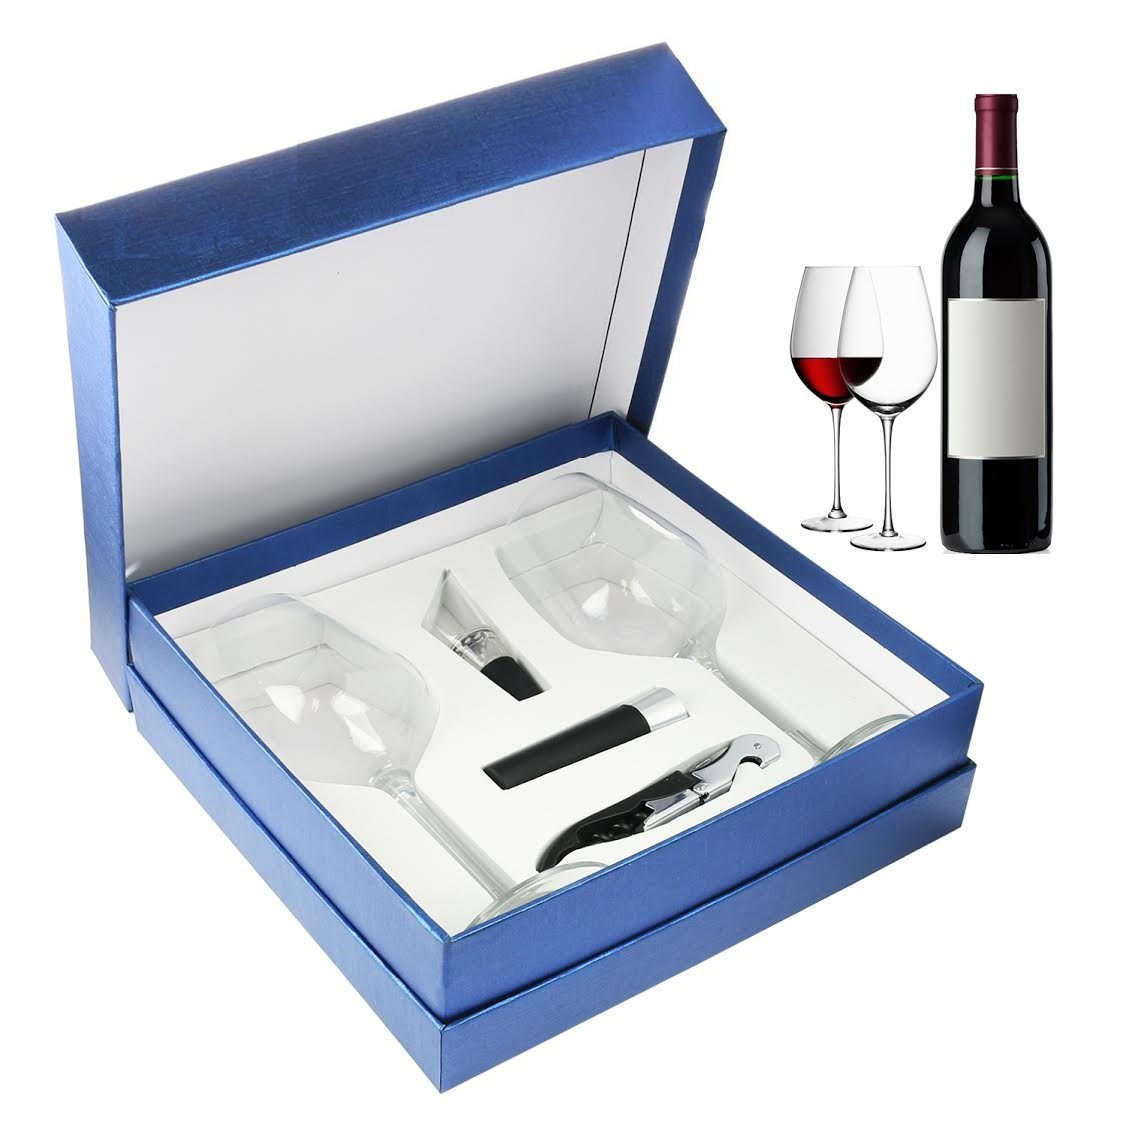 Zalik Wine Glasses Gift Set - Set Of 2 Wine Glasses, Wine Opener, Wine Stopper And Wine Aerator Pourer For Enhanced Flavor - Perfect Gift For Every Occasion - Wine Accessories - Elegant Gift Box